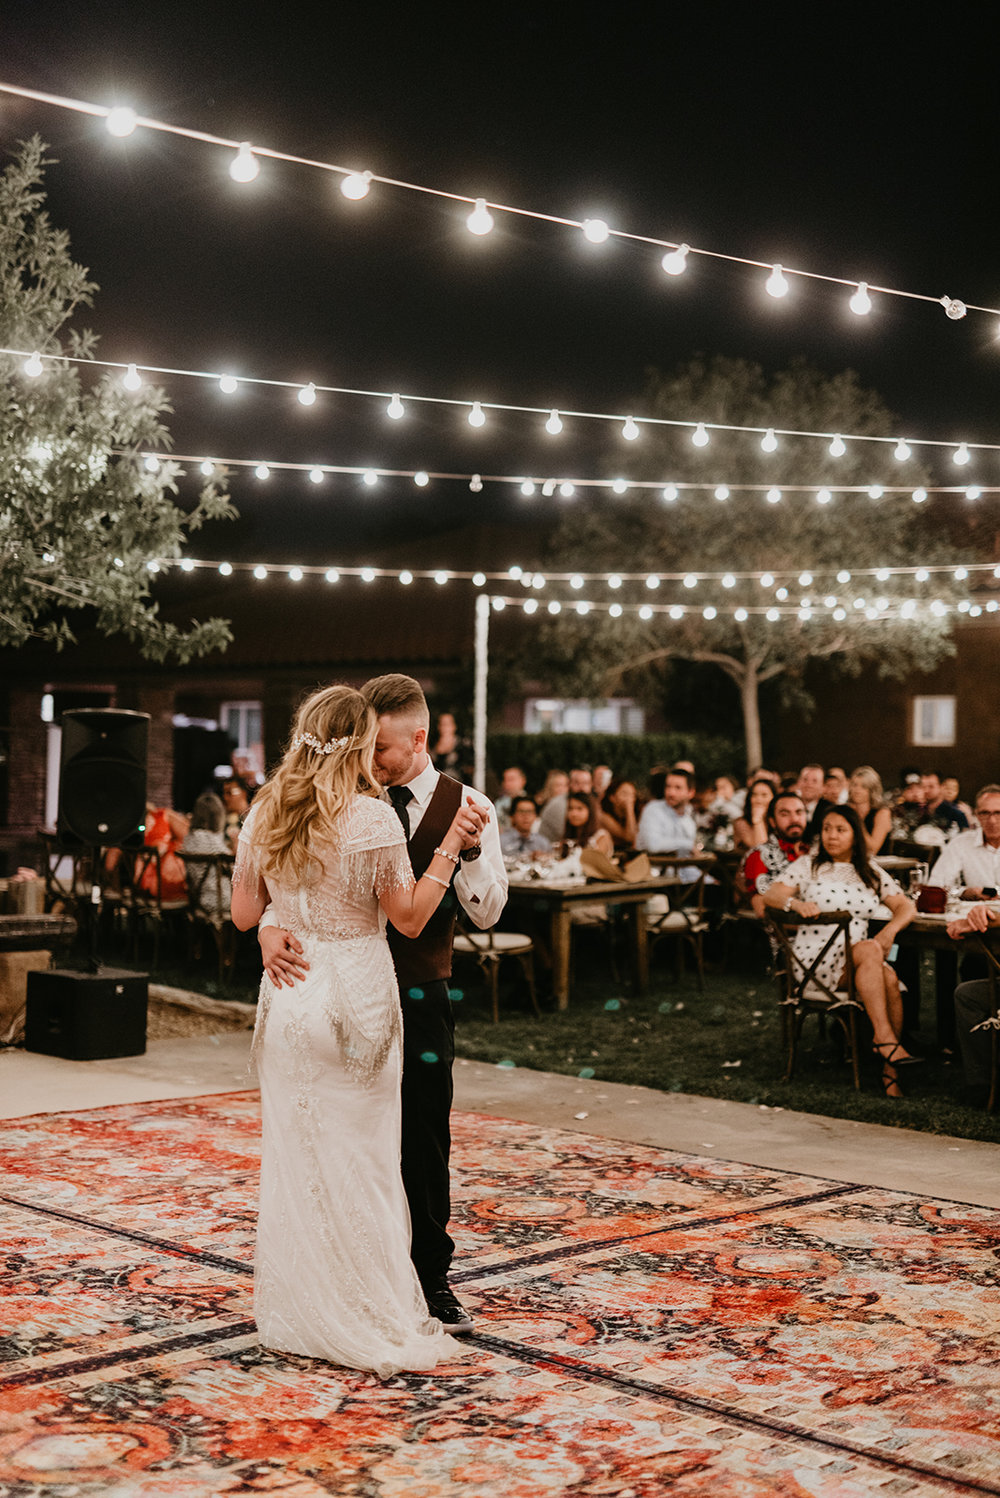 Backyard Las Vegas Wedding - Bride and Groom Dancing